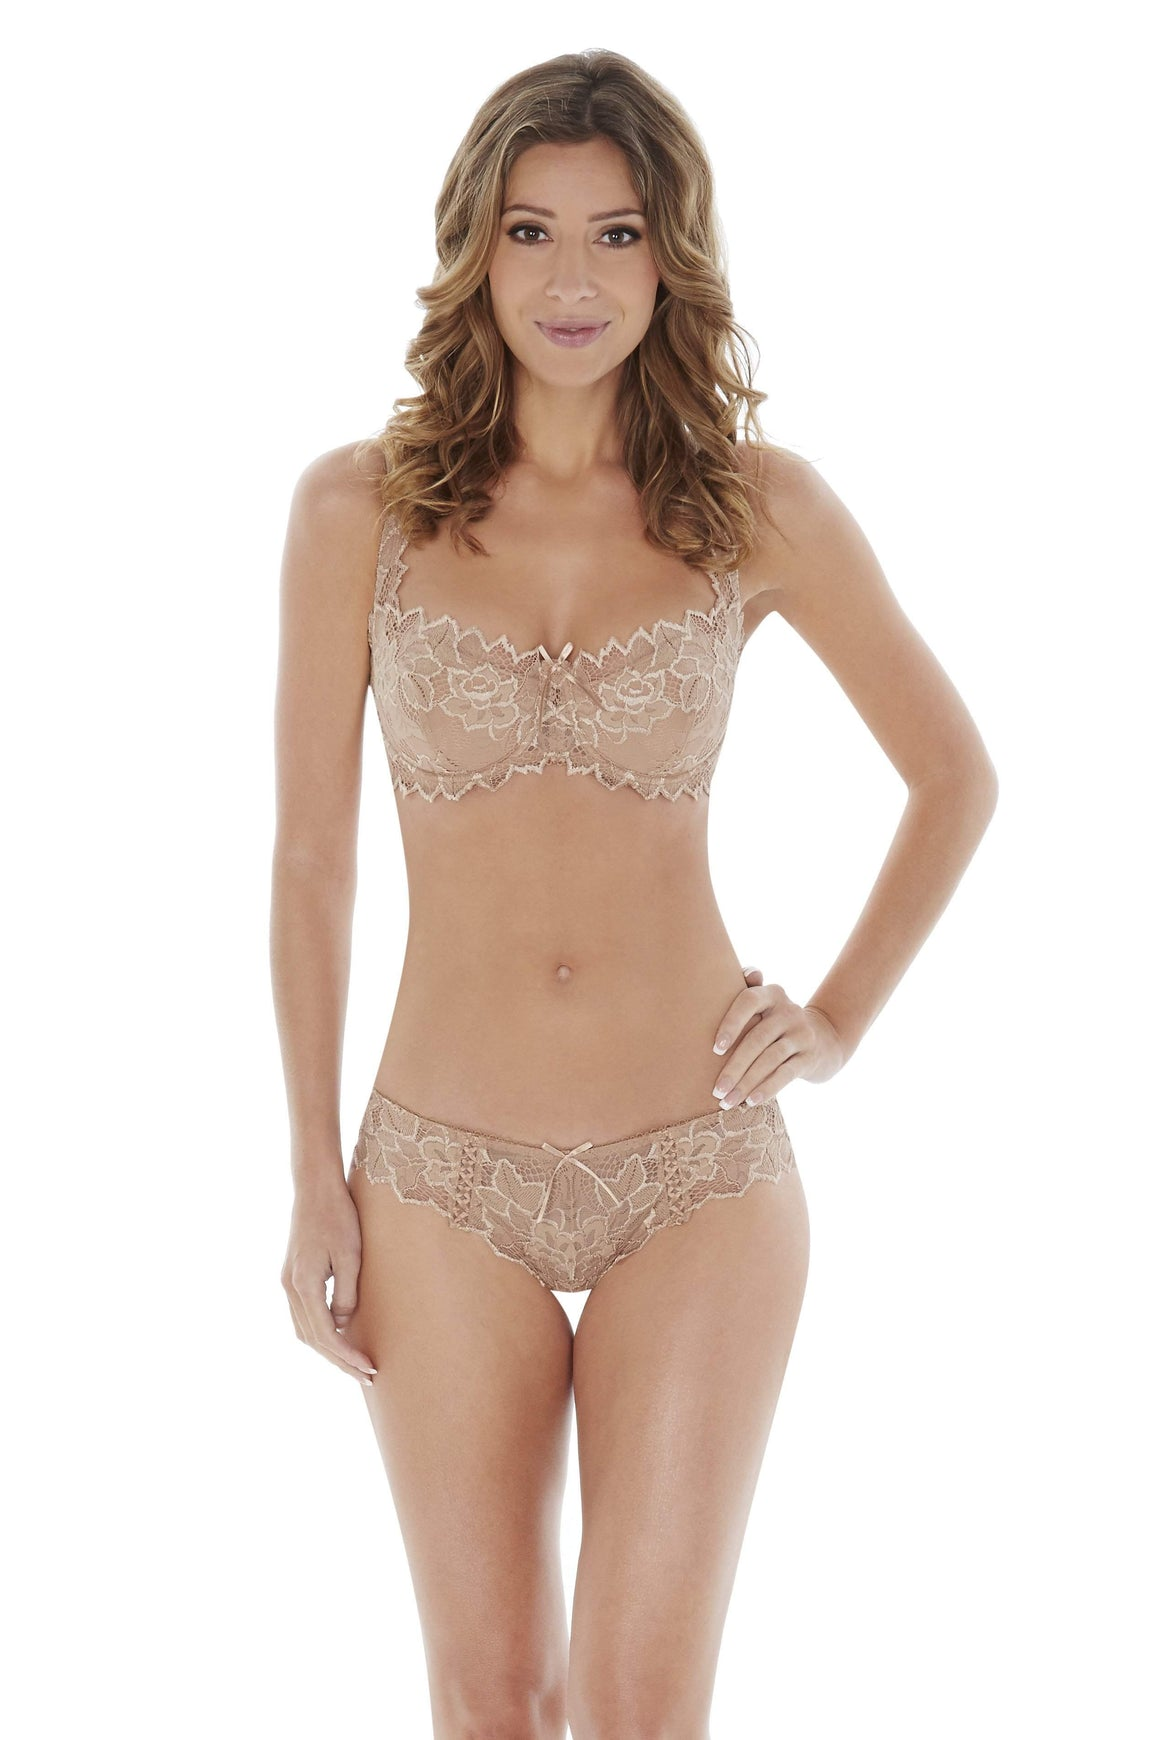 Fiore Balcony Bra in Nude by Lepel - Charnos / Lepel - Katys Boutique Lingerie USA